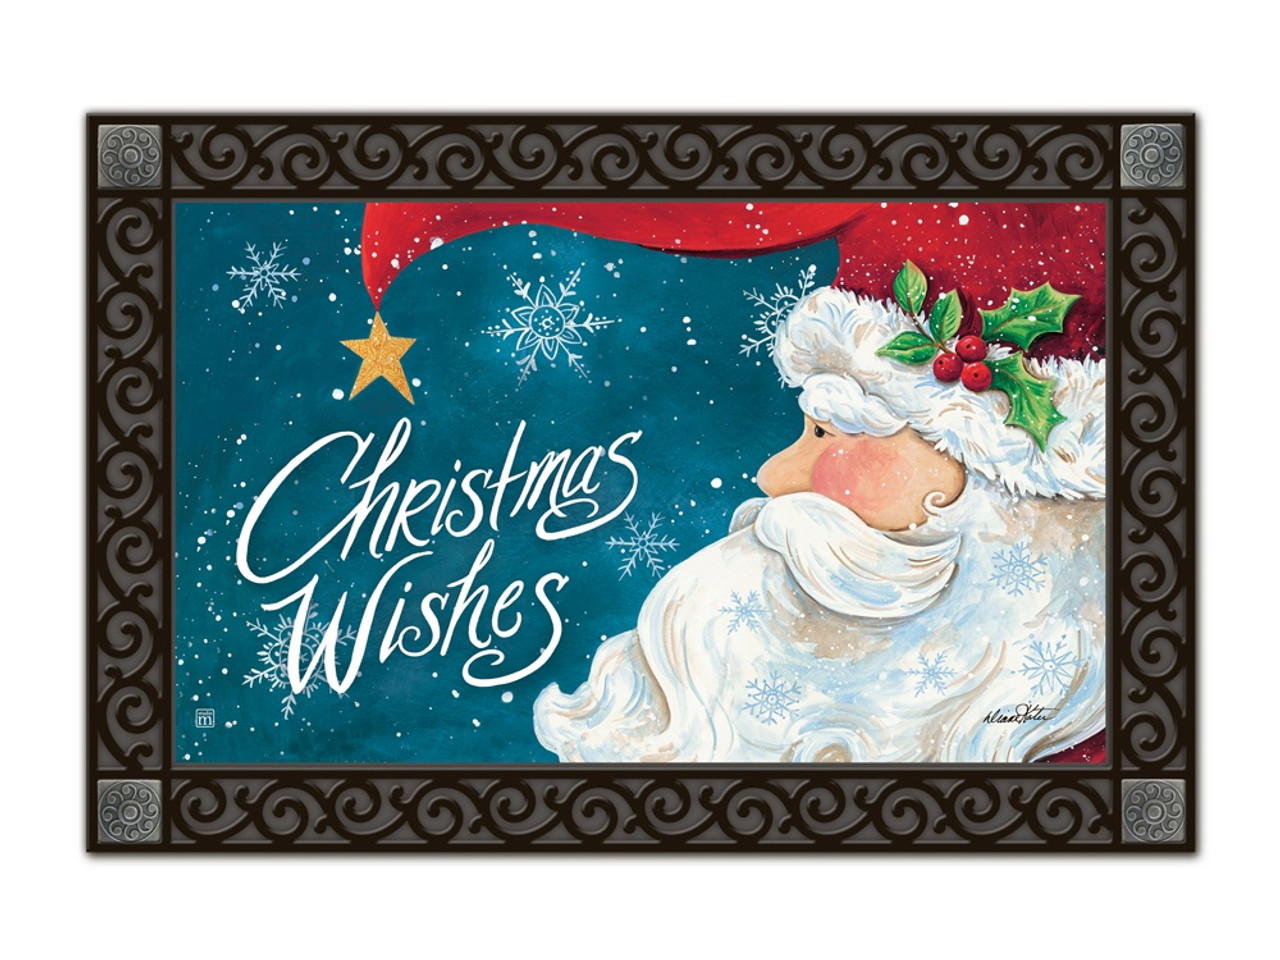 Santa Wishes MatMates Doormat - Tray Sold Separately  sc 1 st  Flags On A Stick & Santa Wishes MatMates Door Mat - Welcome Outdoor Mats